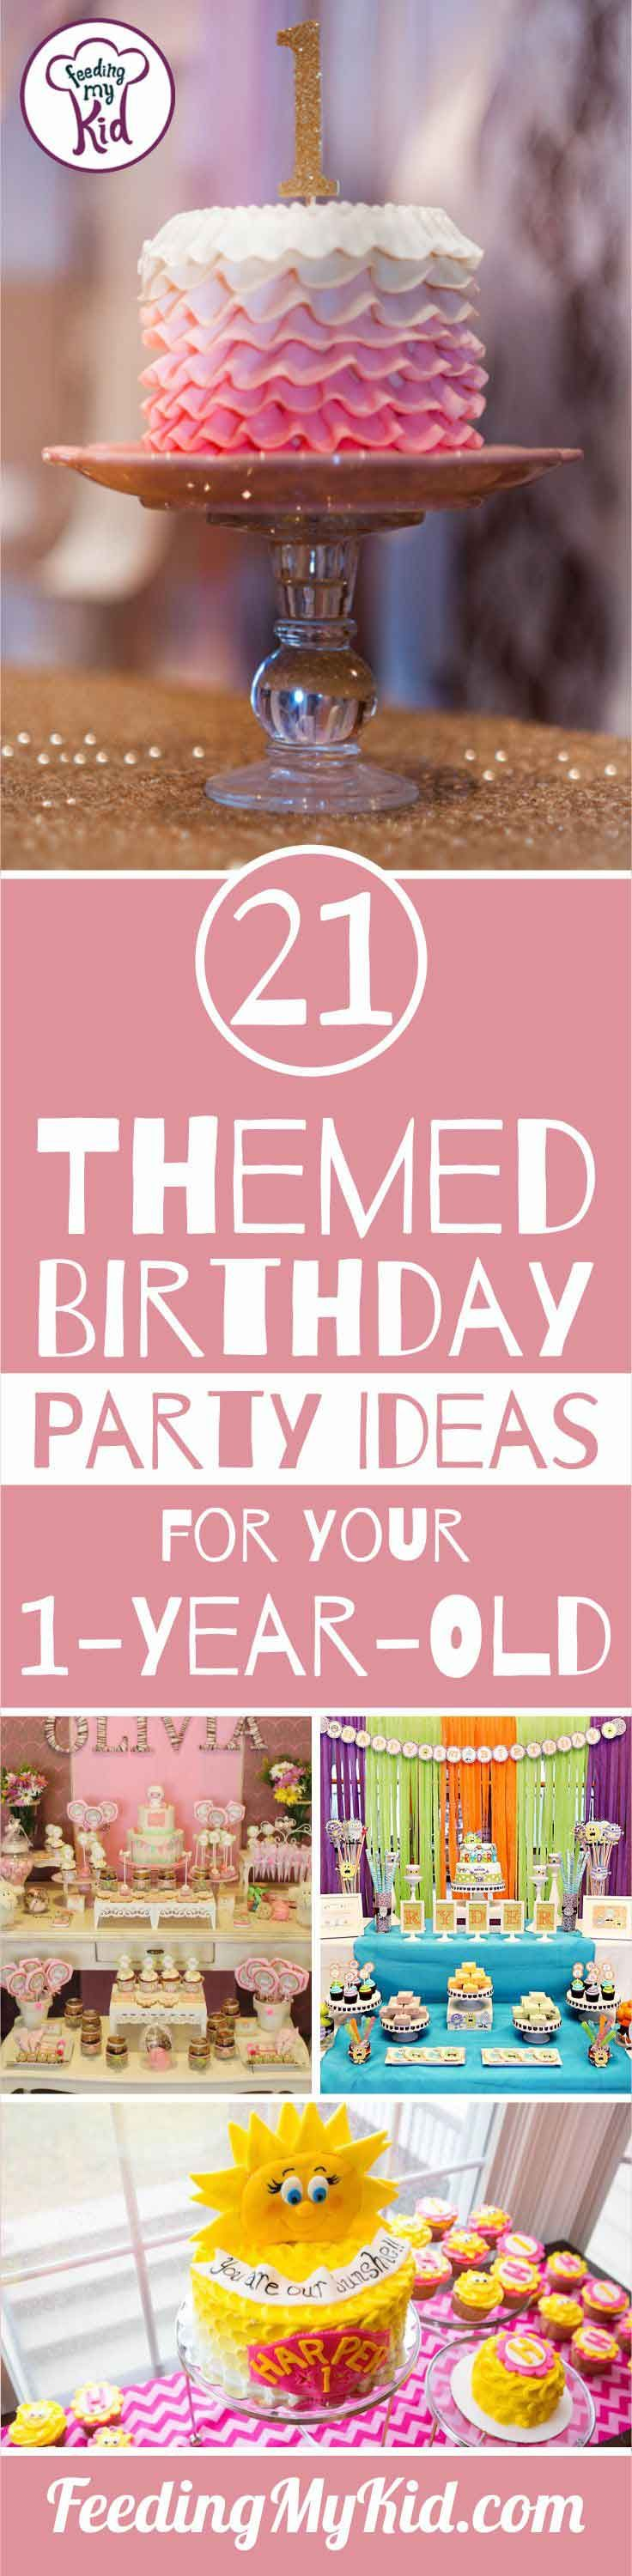 21 Themed Birthday Party Ideas For Your 1 Year Old